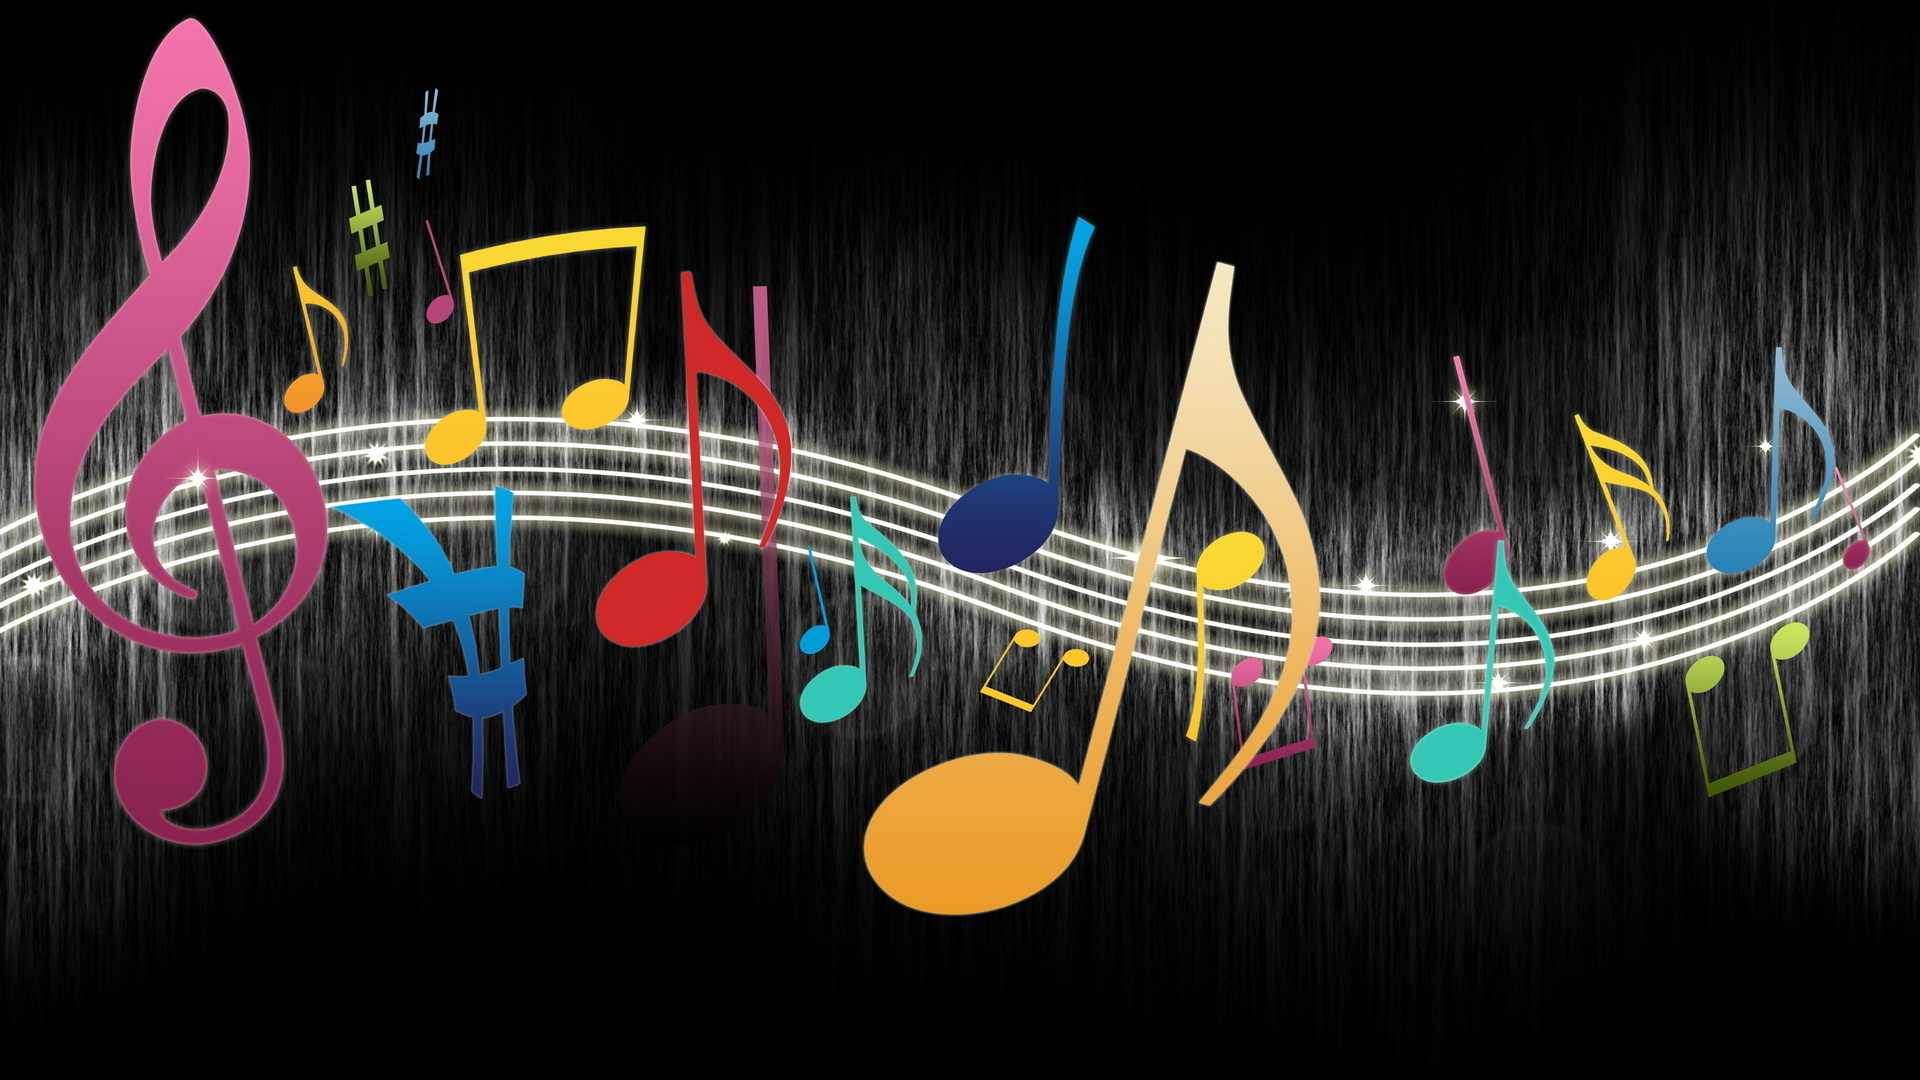 colorful-music-notes-wallpaper-1.jpg